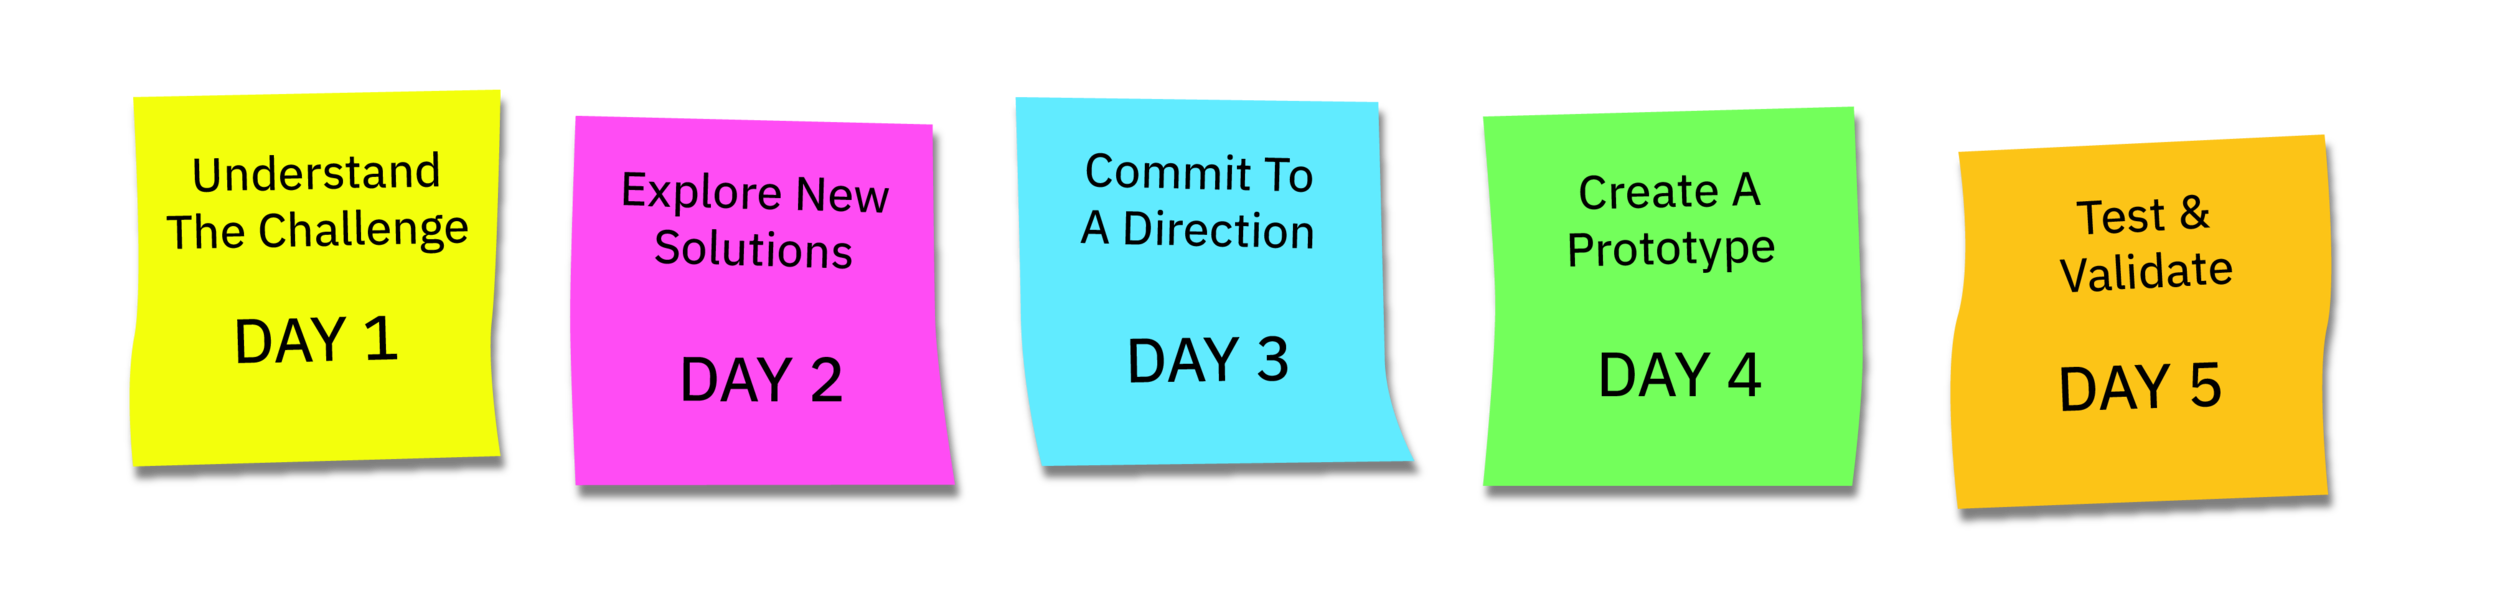 5-day-sprint-structure.png